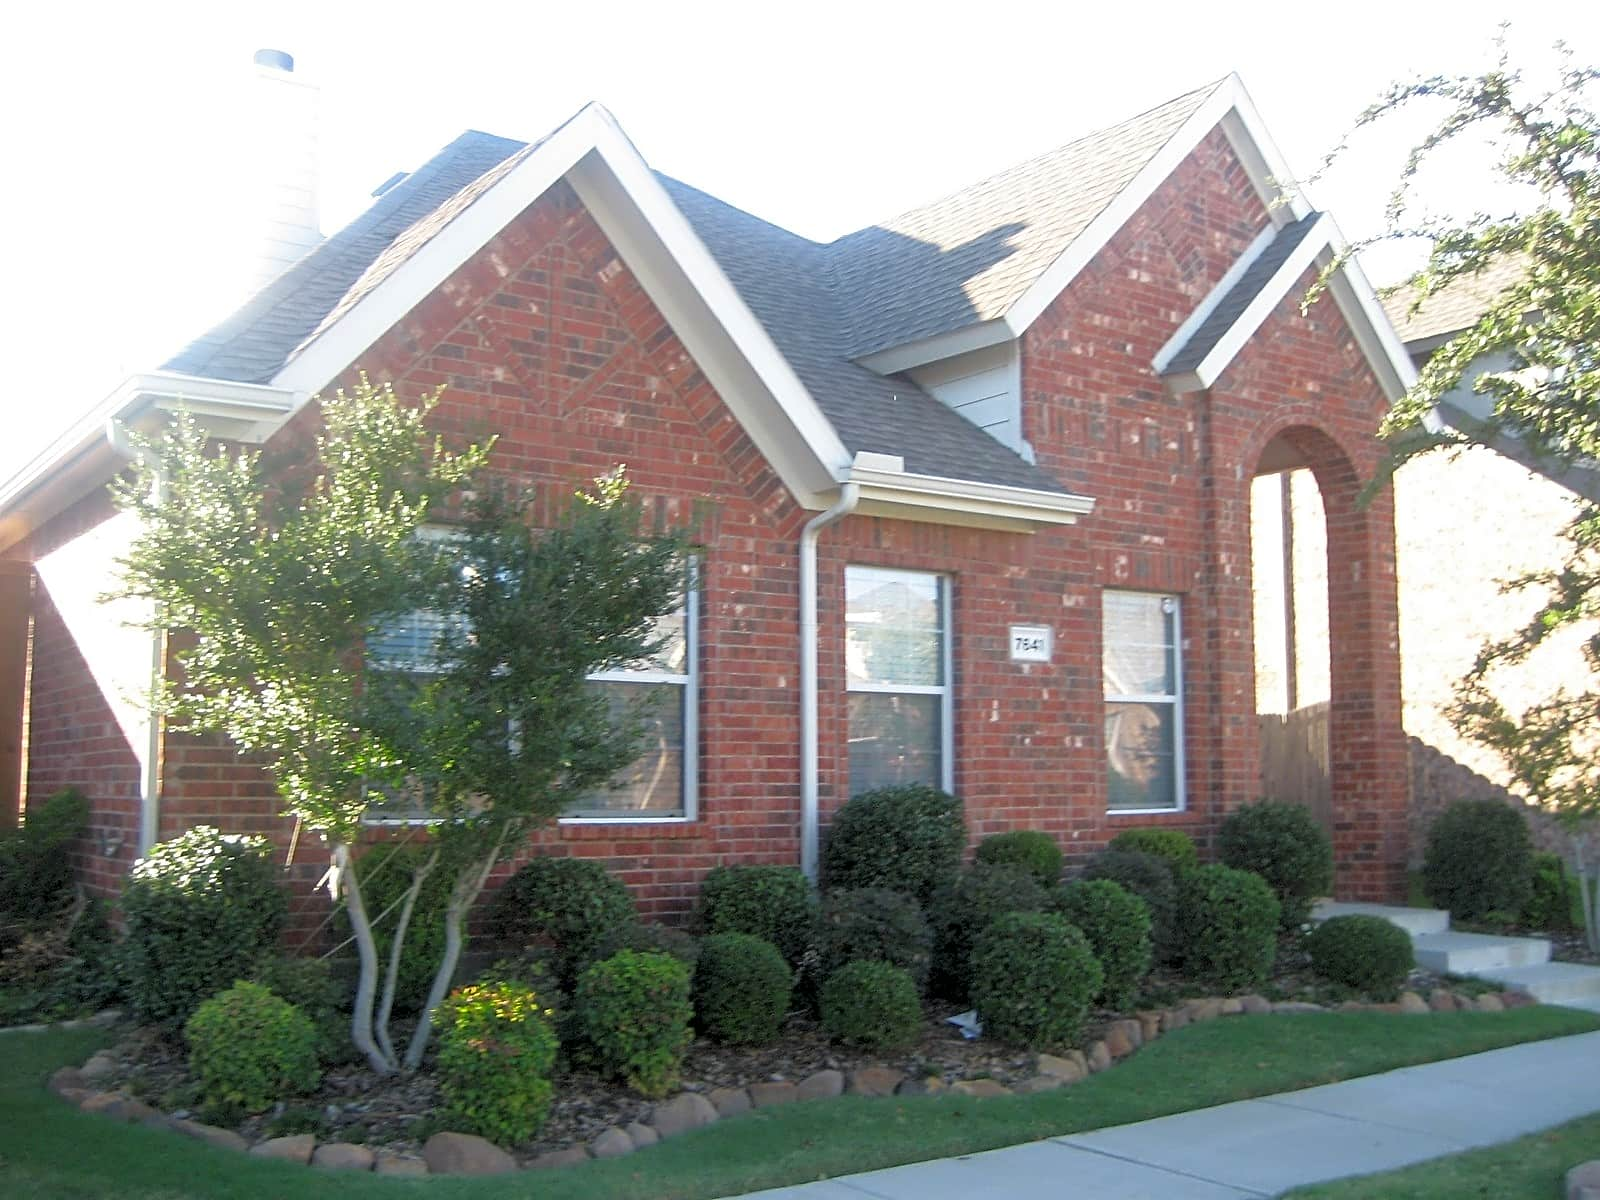 House for Rent in Frisco